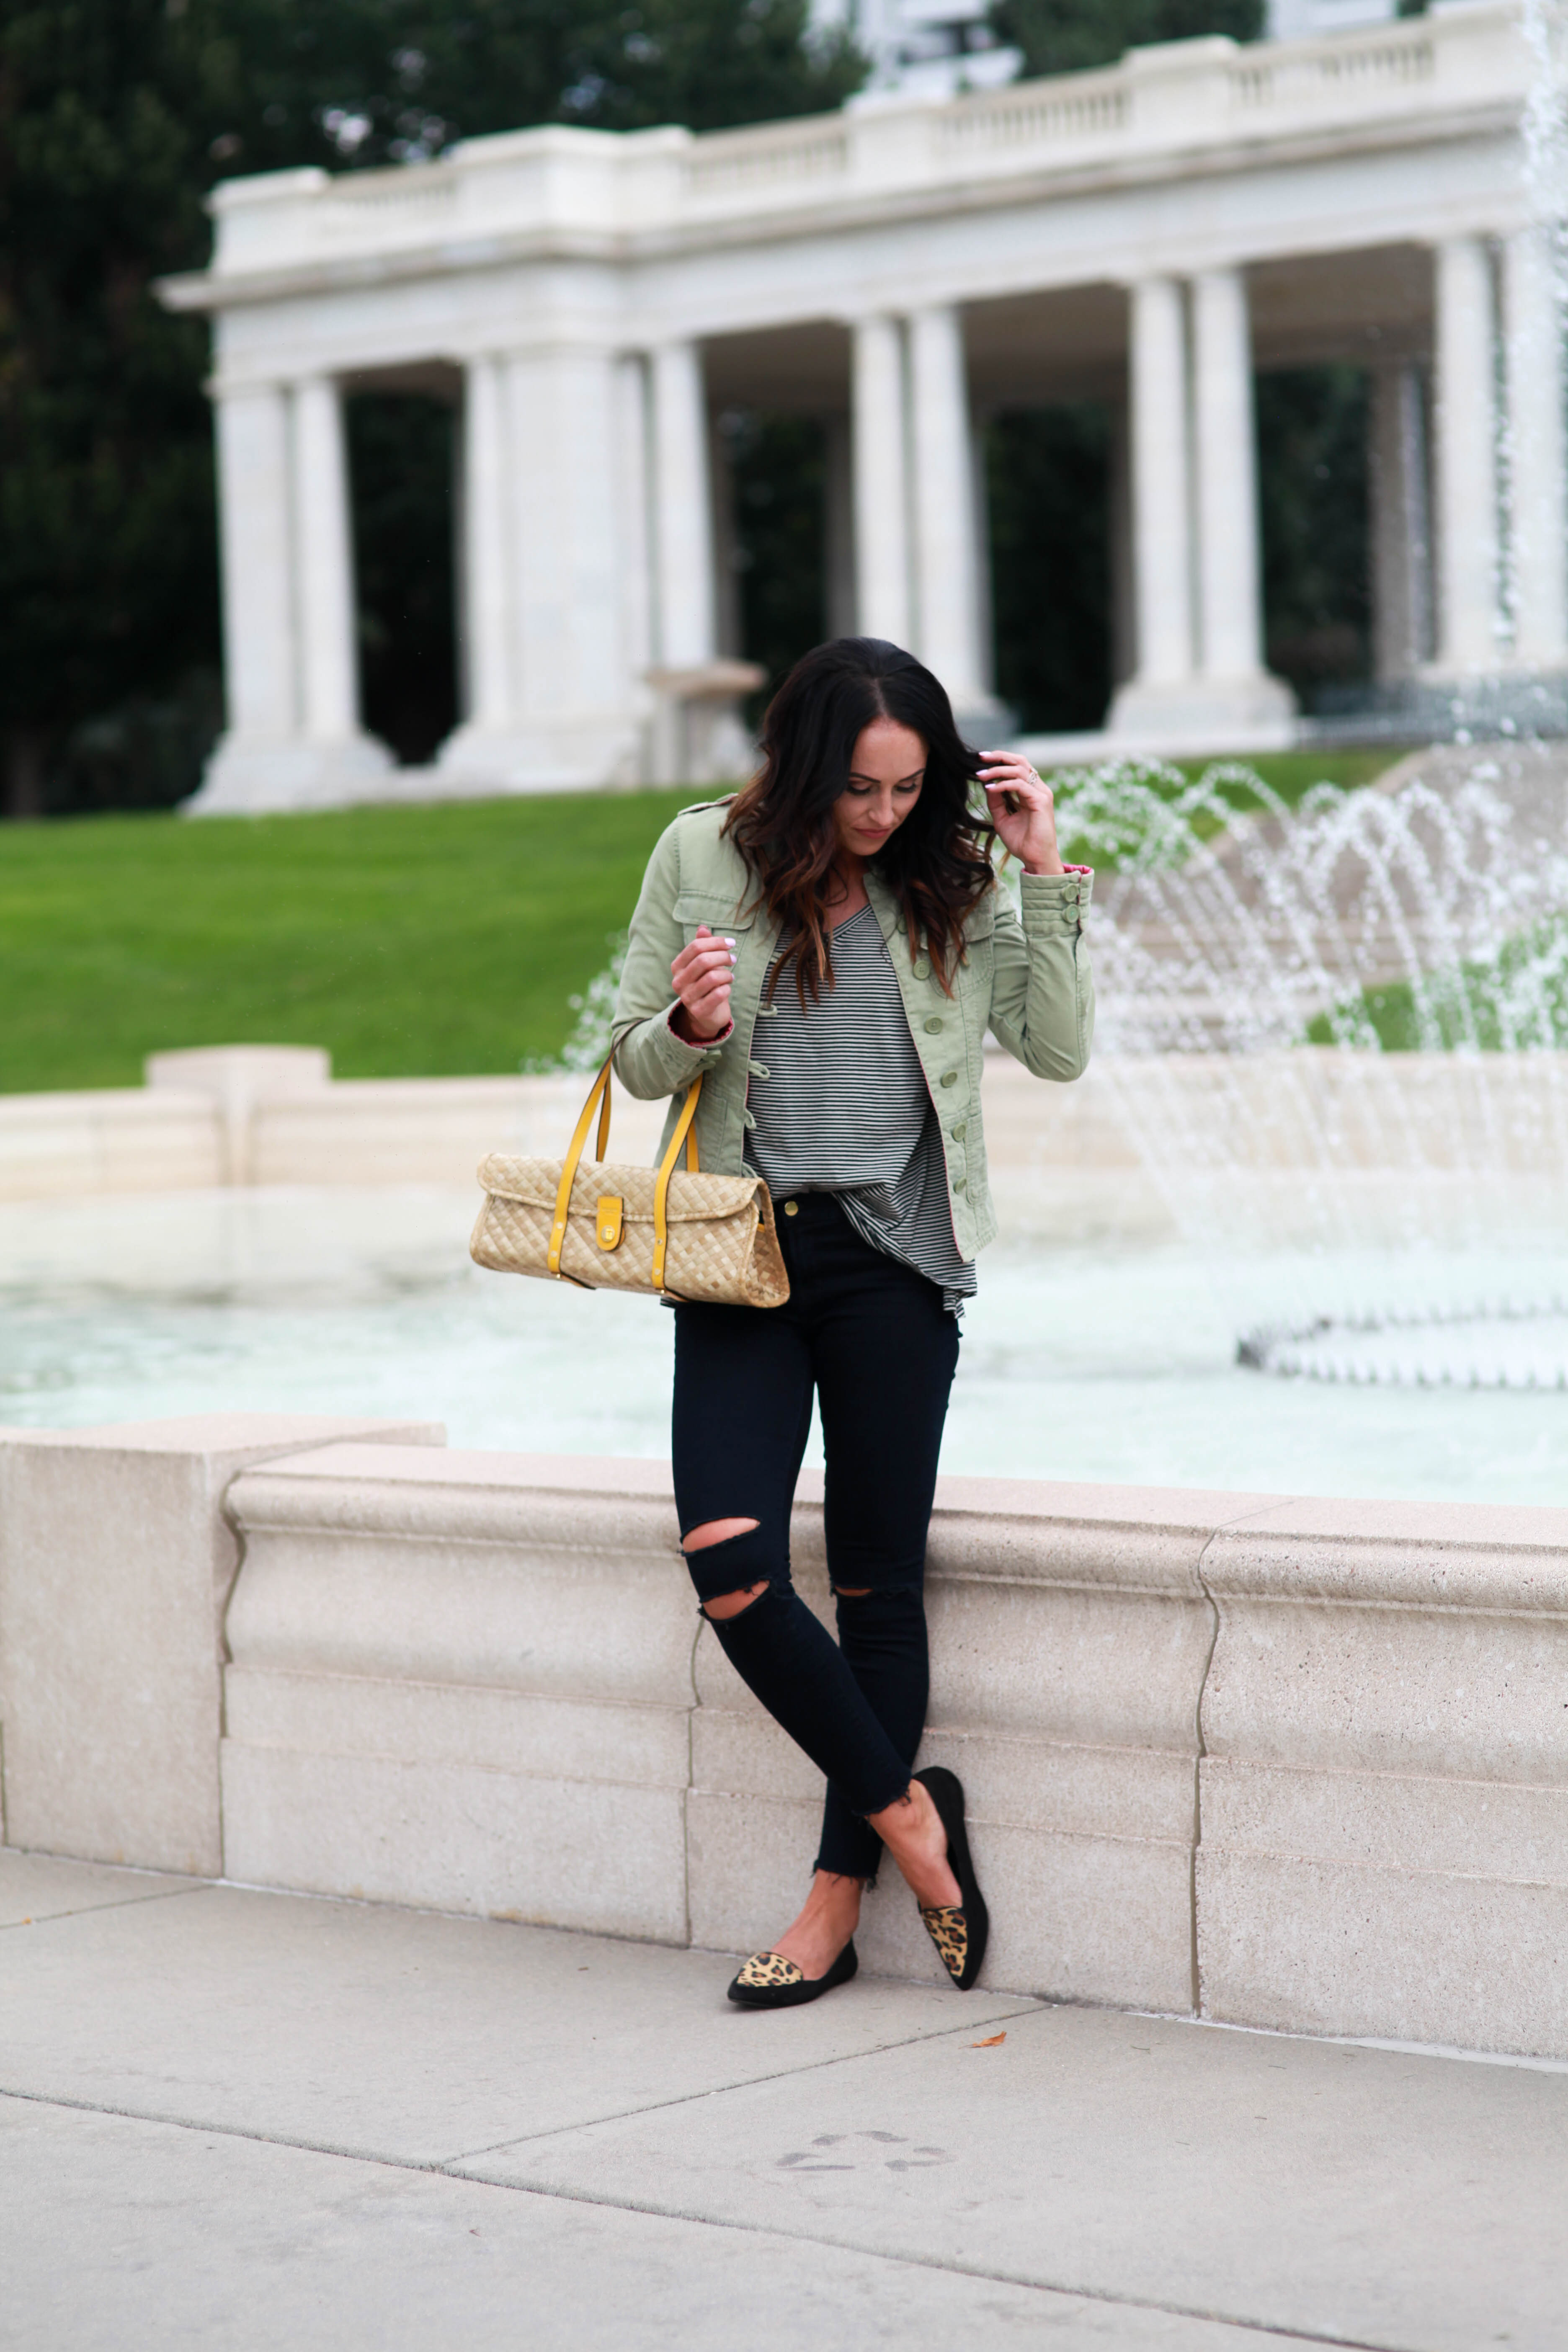 PaleOMG Fashion - Transition to Fall at a Fraction of the Price (+ a special discount AND giveaway!)